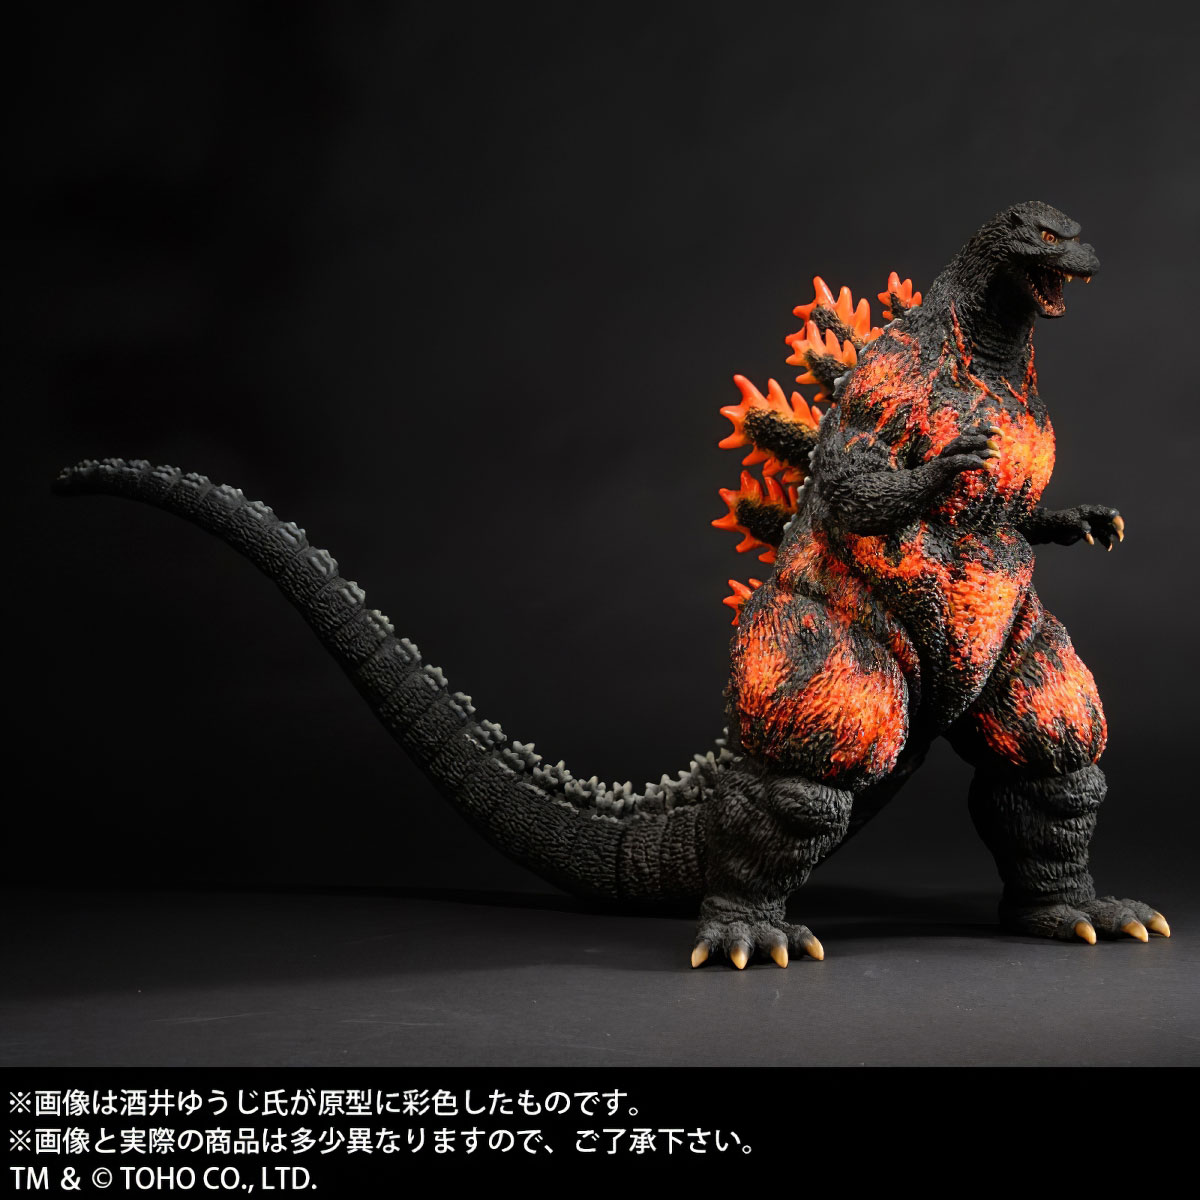 Right front view of the 30cm Series Yuji Sakai Modeling Collection Godzilla 1995 Standard vinyl figure by X-Plus.